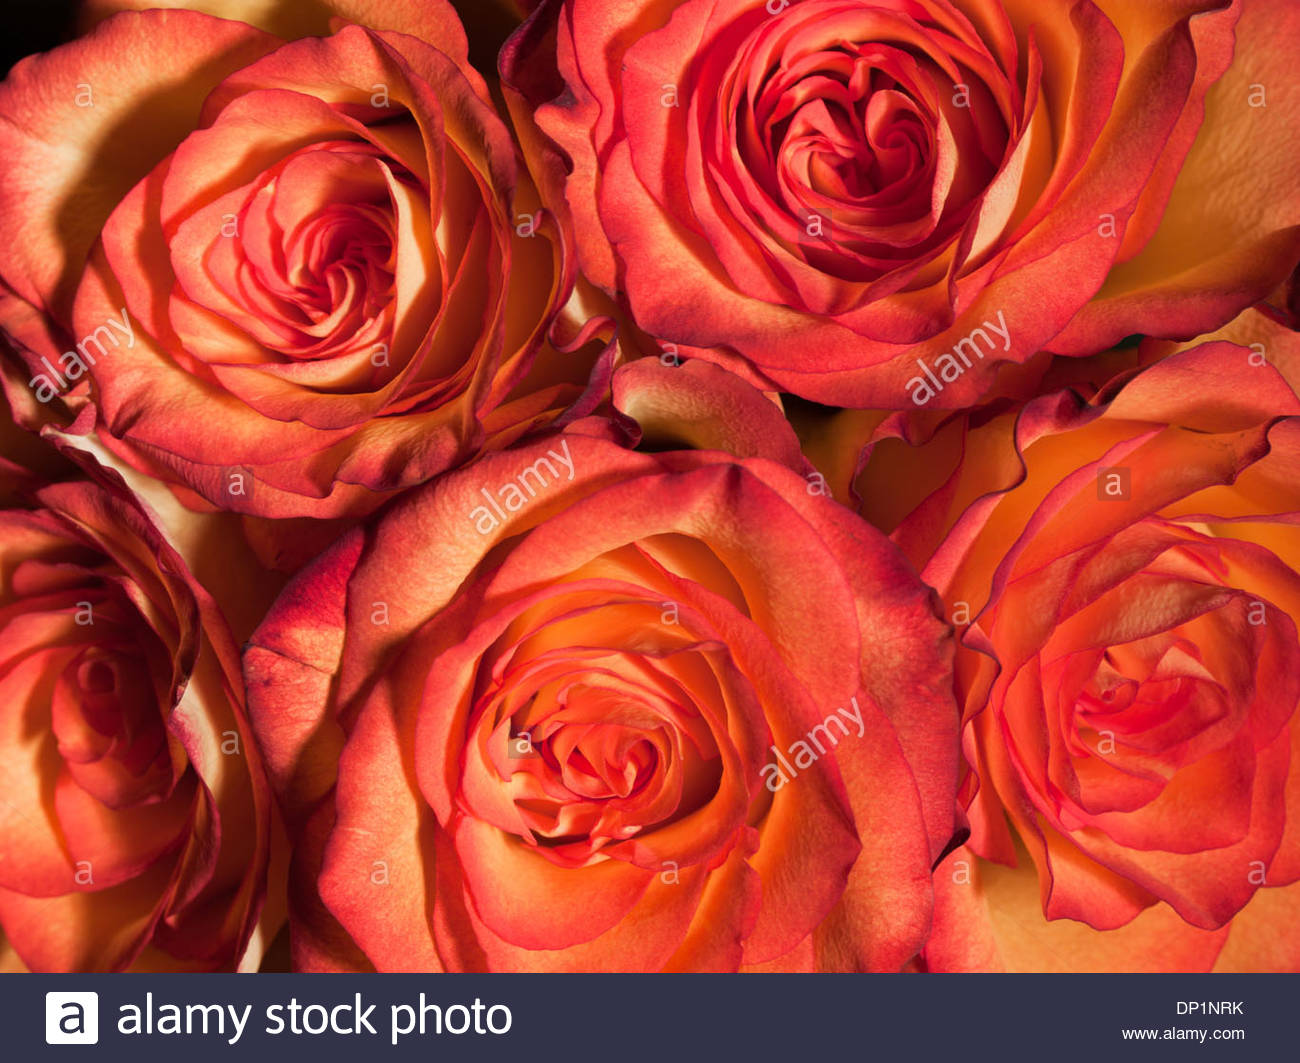 Close up of roses Photo Stock